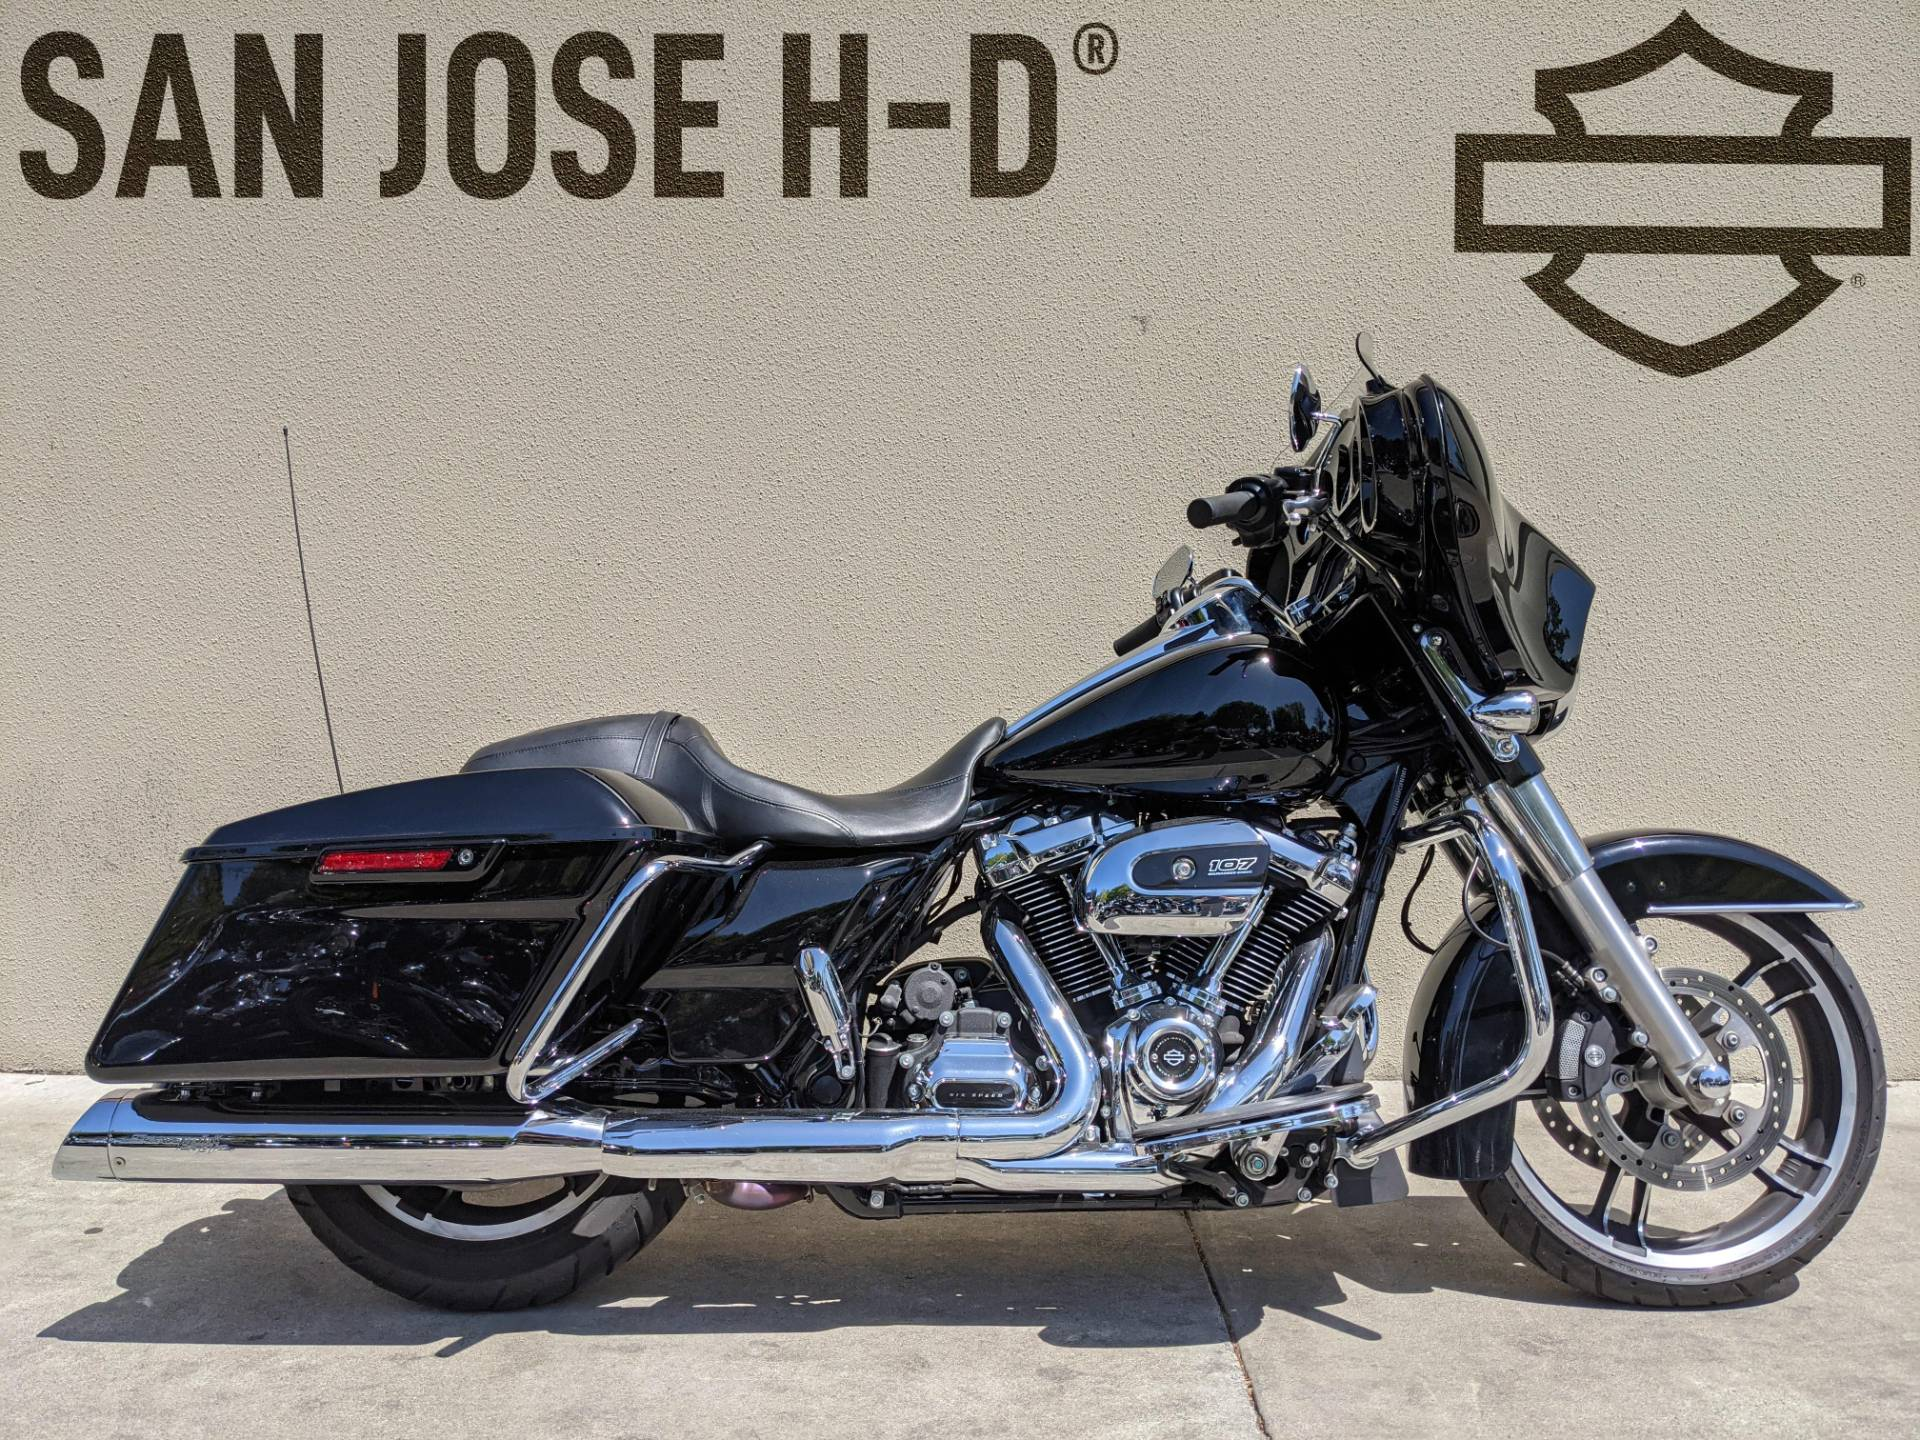 2017 Harley-Davidson Street Glide® Special in San Jose, California - Photo 1